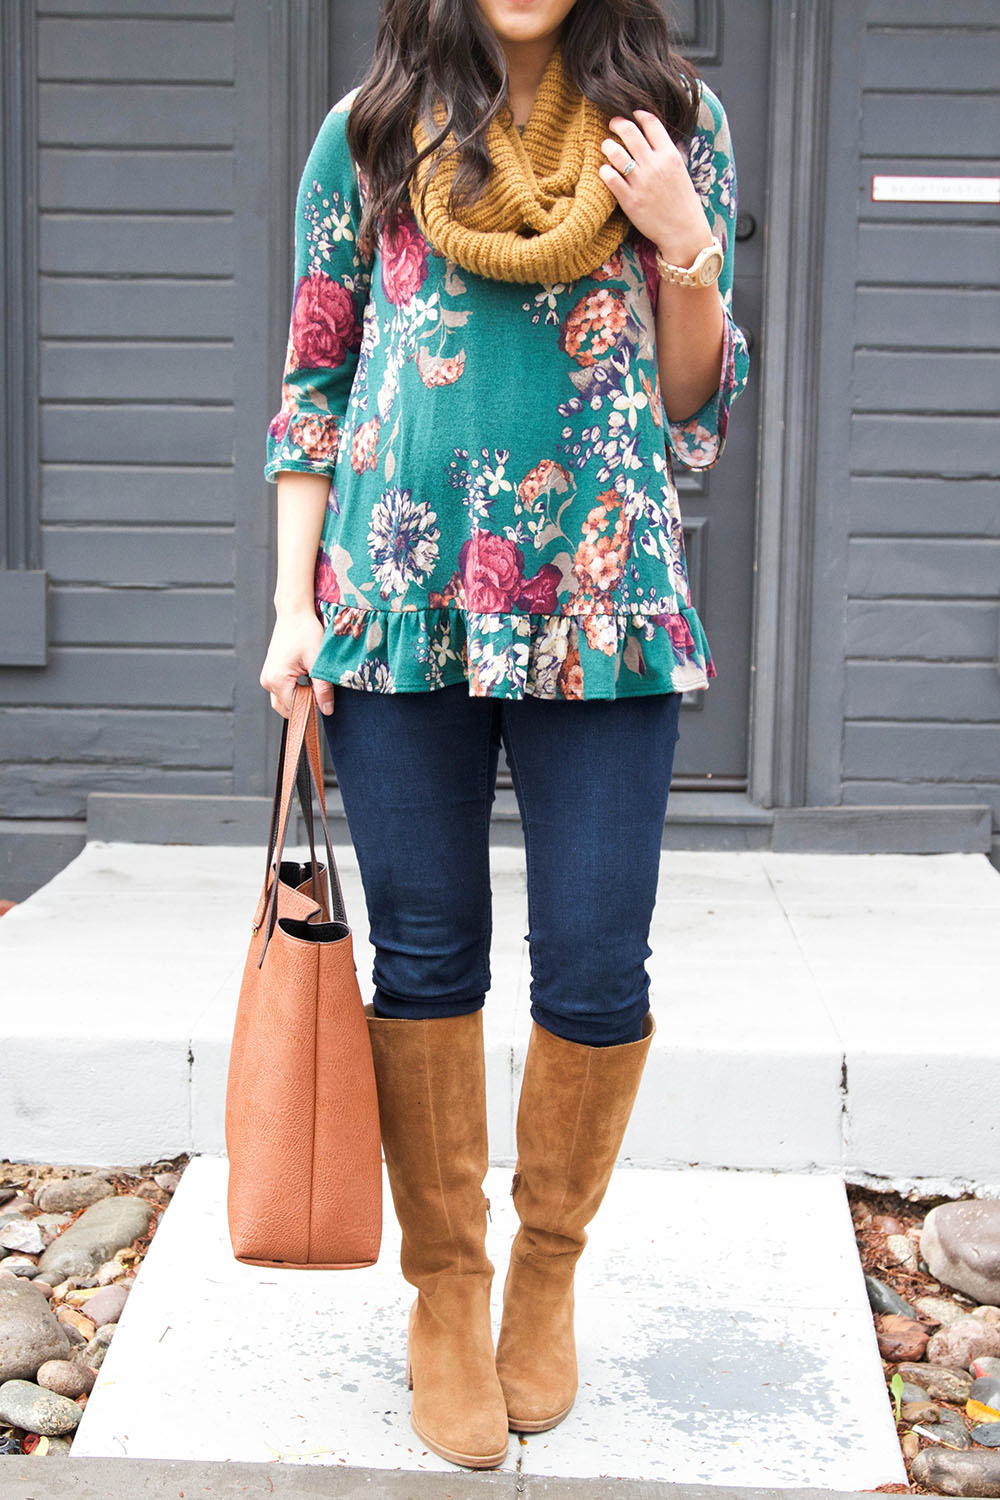 Turquoise and brown colour ideas with leggings, denim, jeans